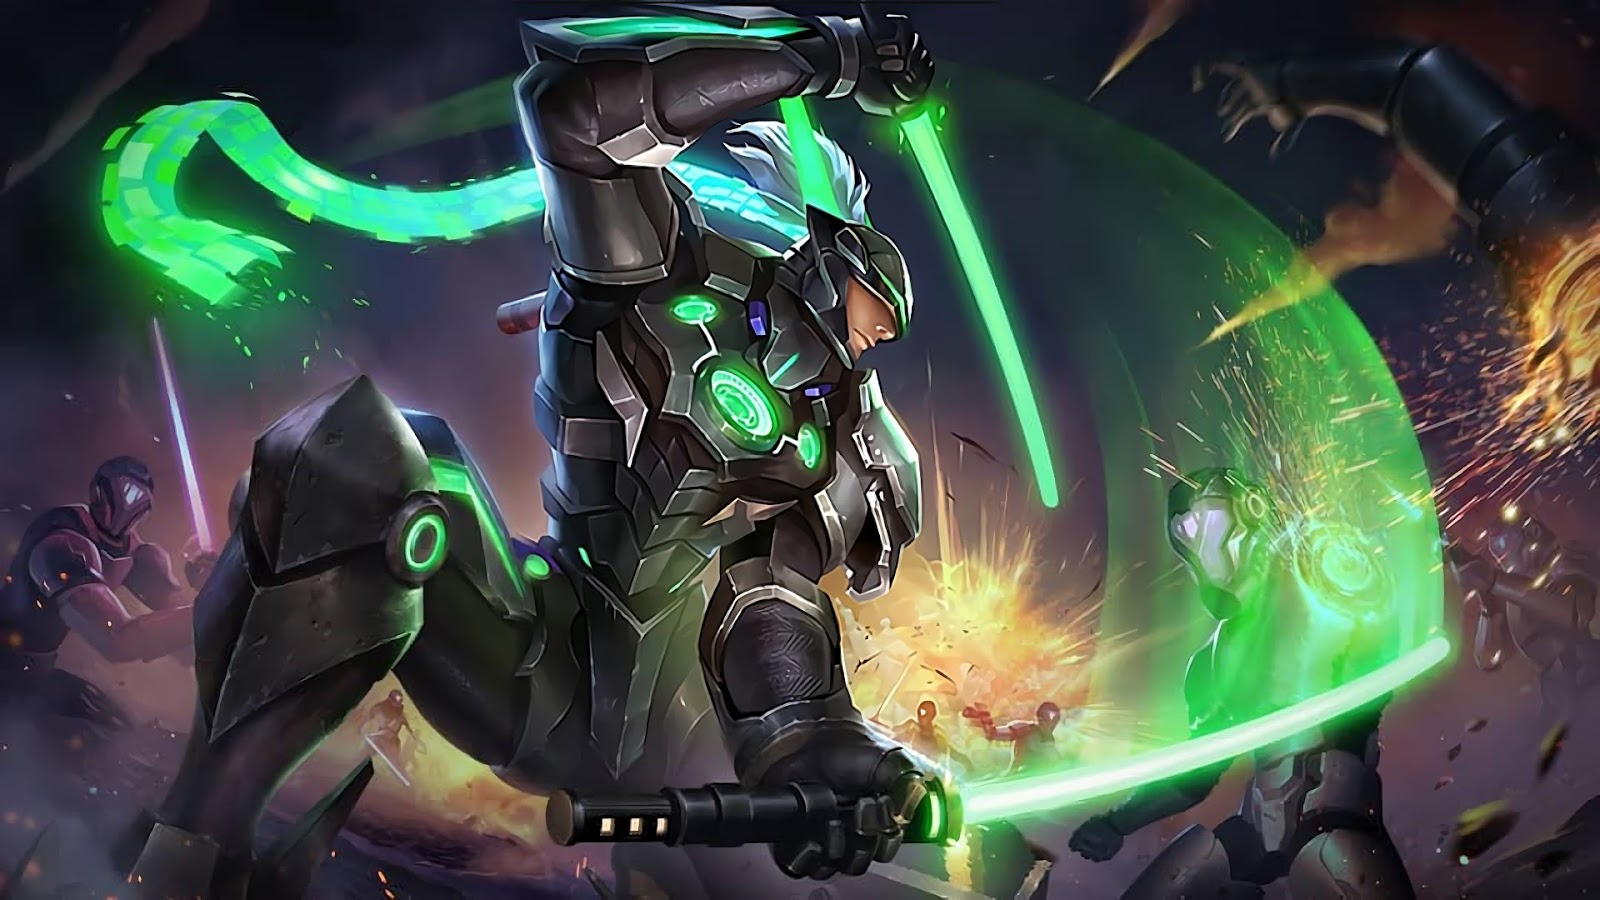 Wallpaper Saber Force Warrior Skin Mobile Legends HD for PC